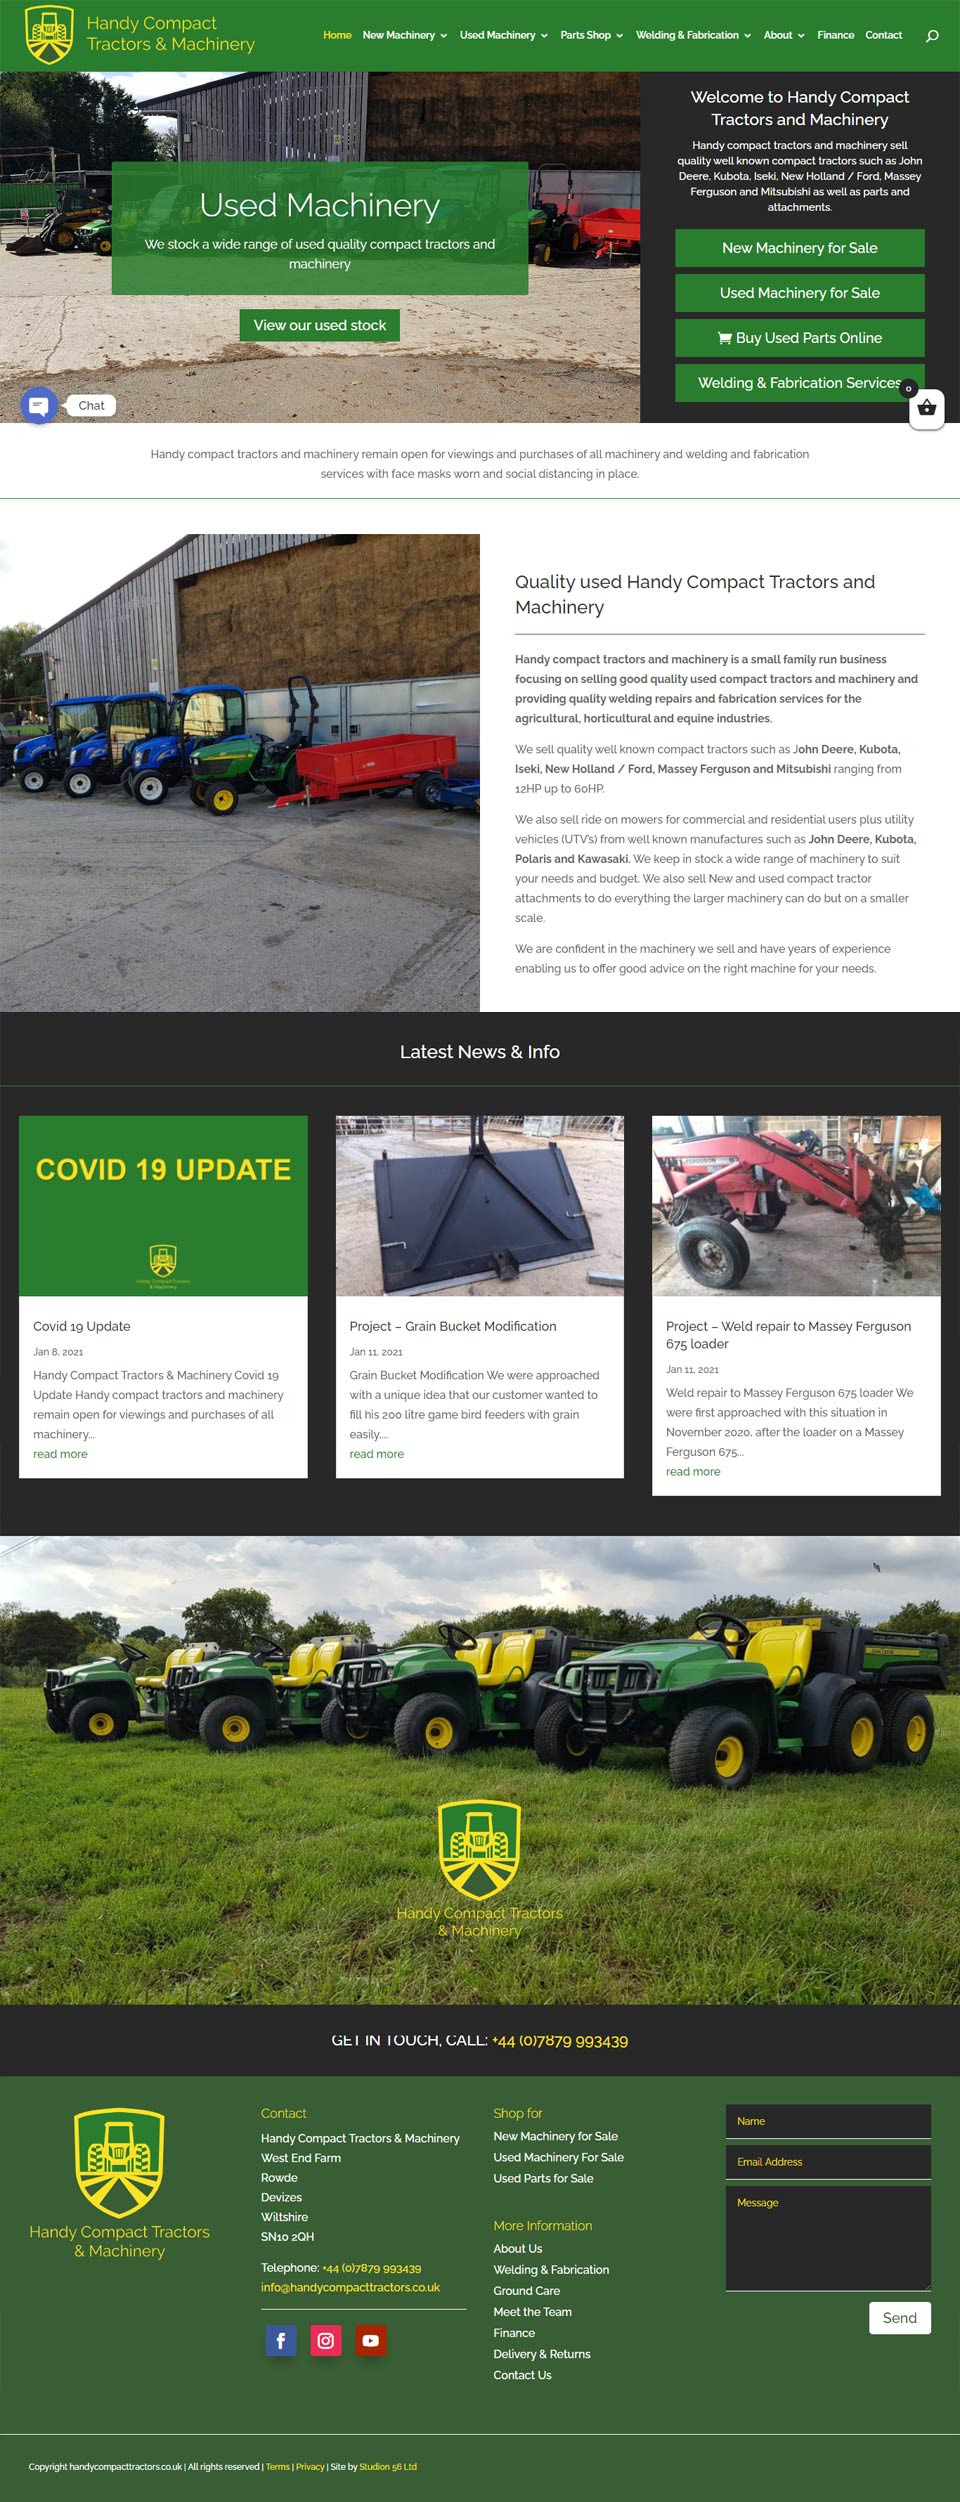 Handy Compact Tractors new website designed and developed by Studio 56